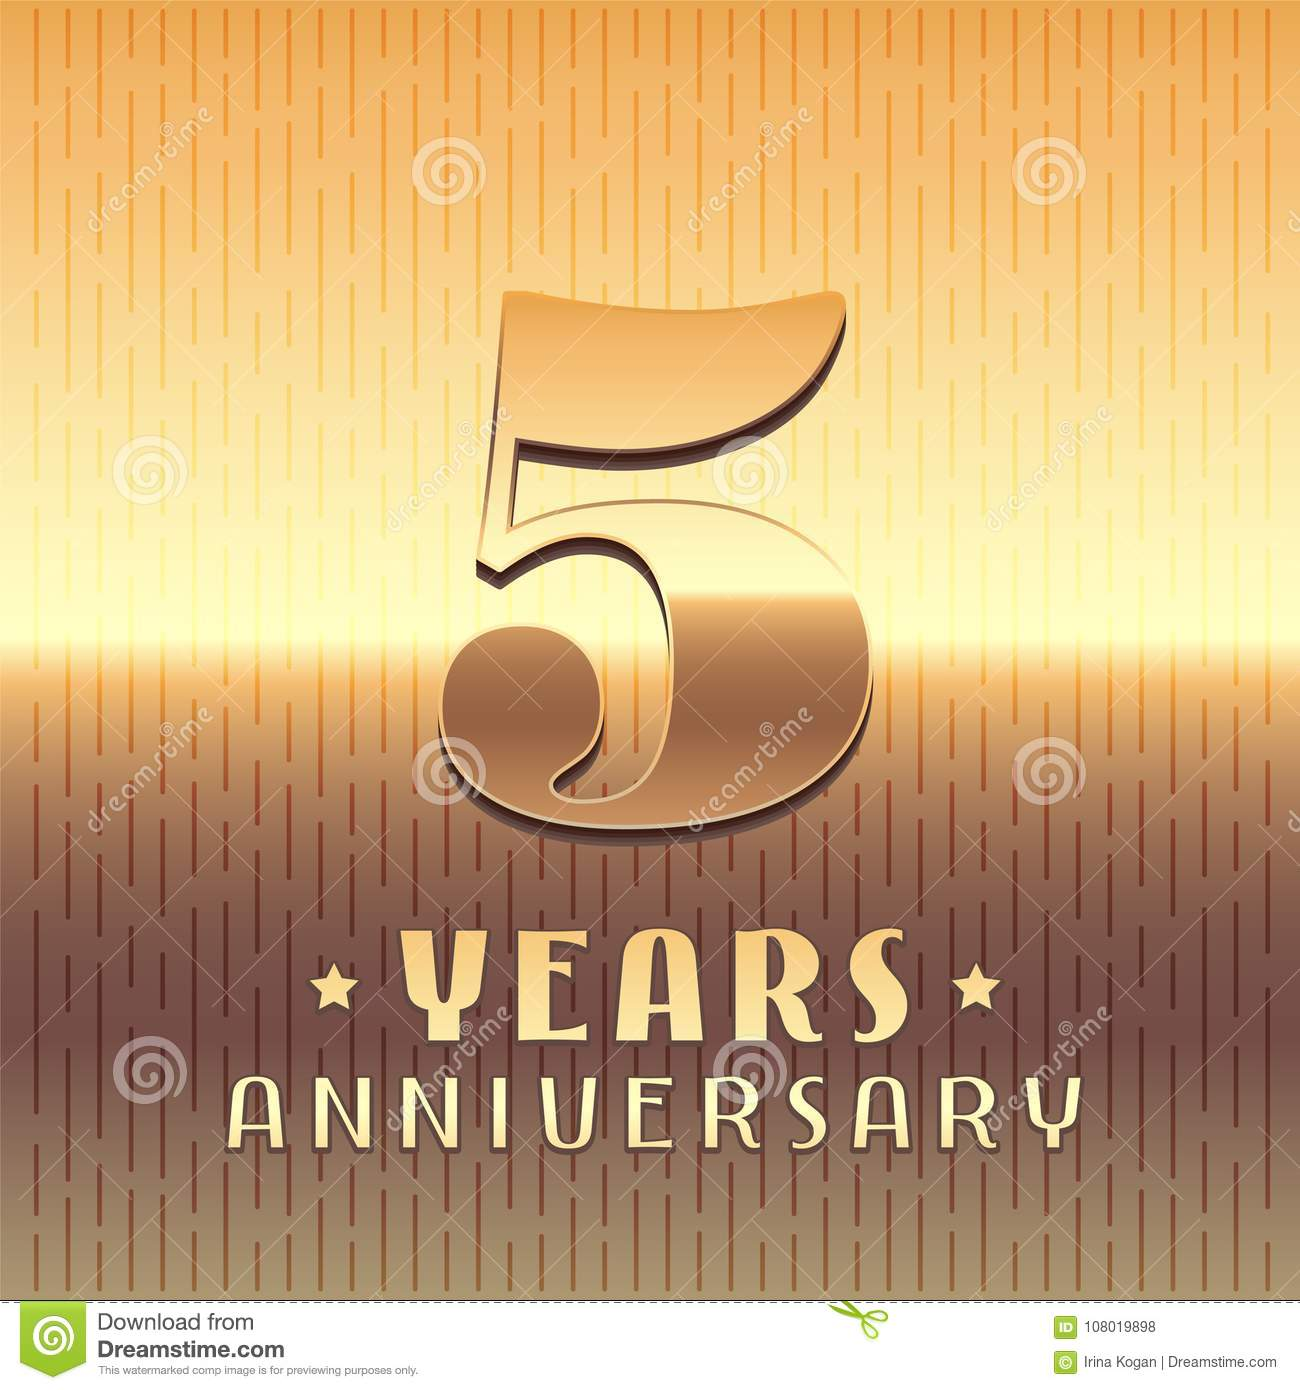 5 Years Anniversary Vector Icon Symbol Stock Vector Illustration